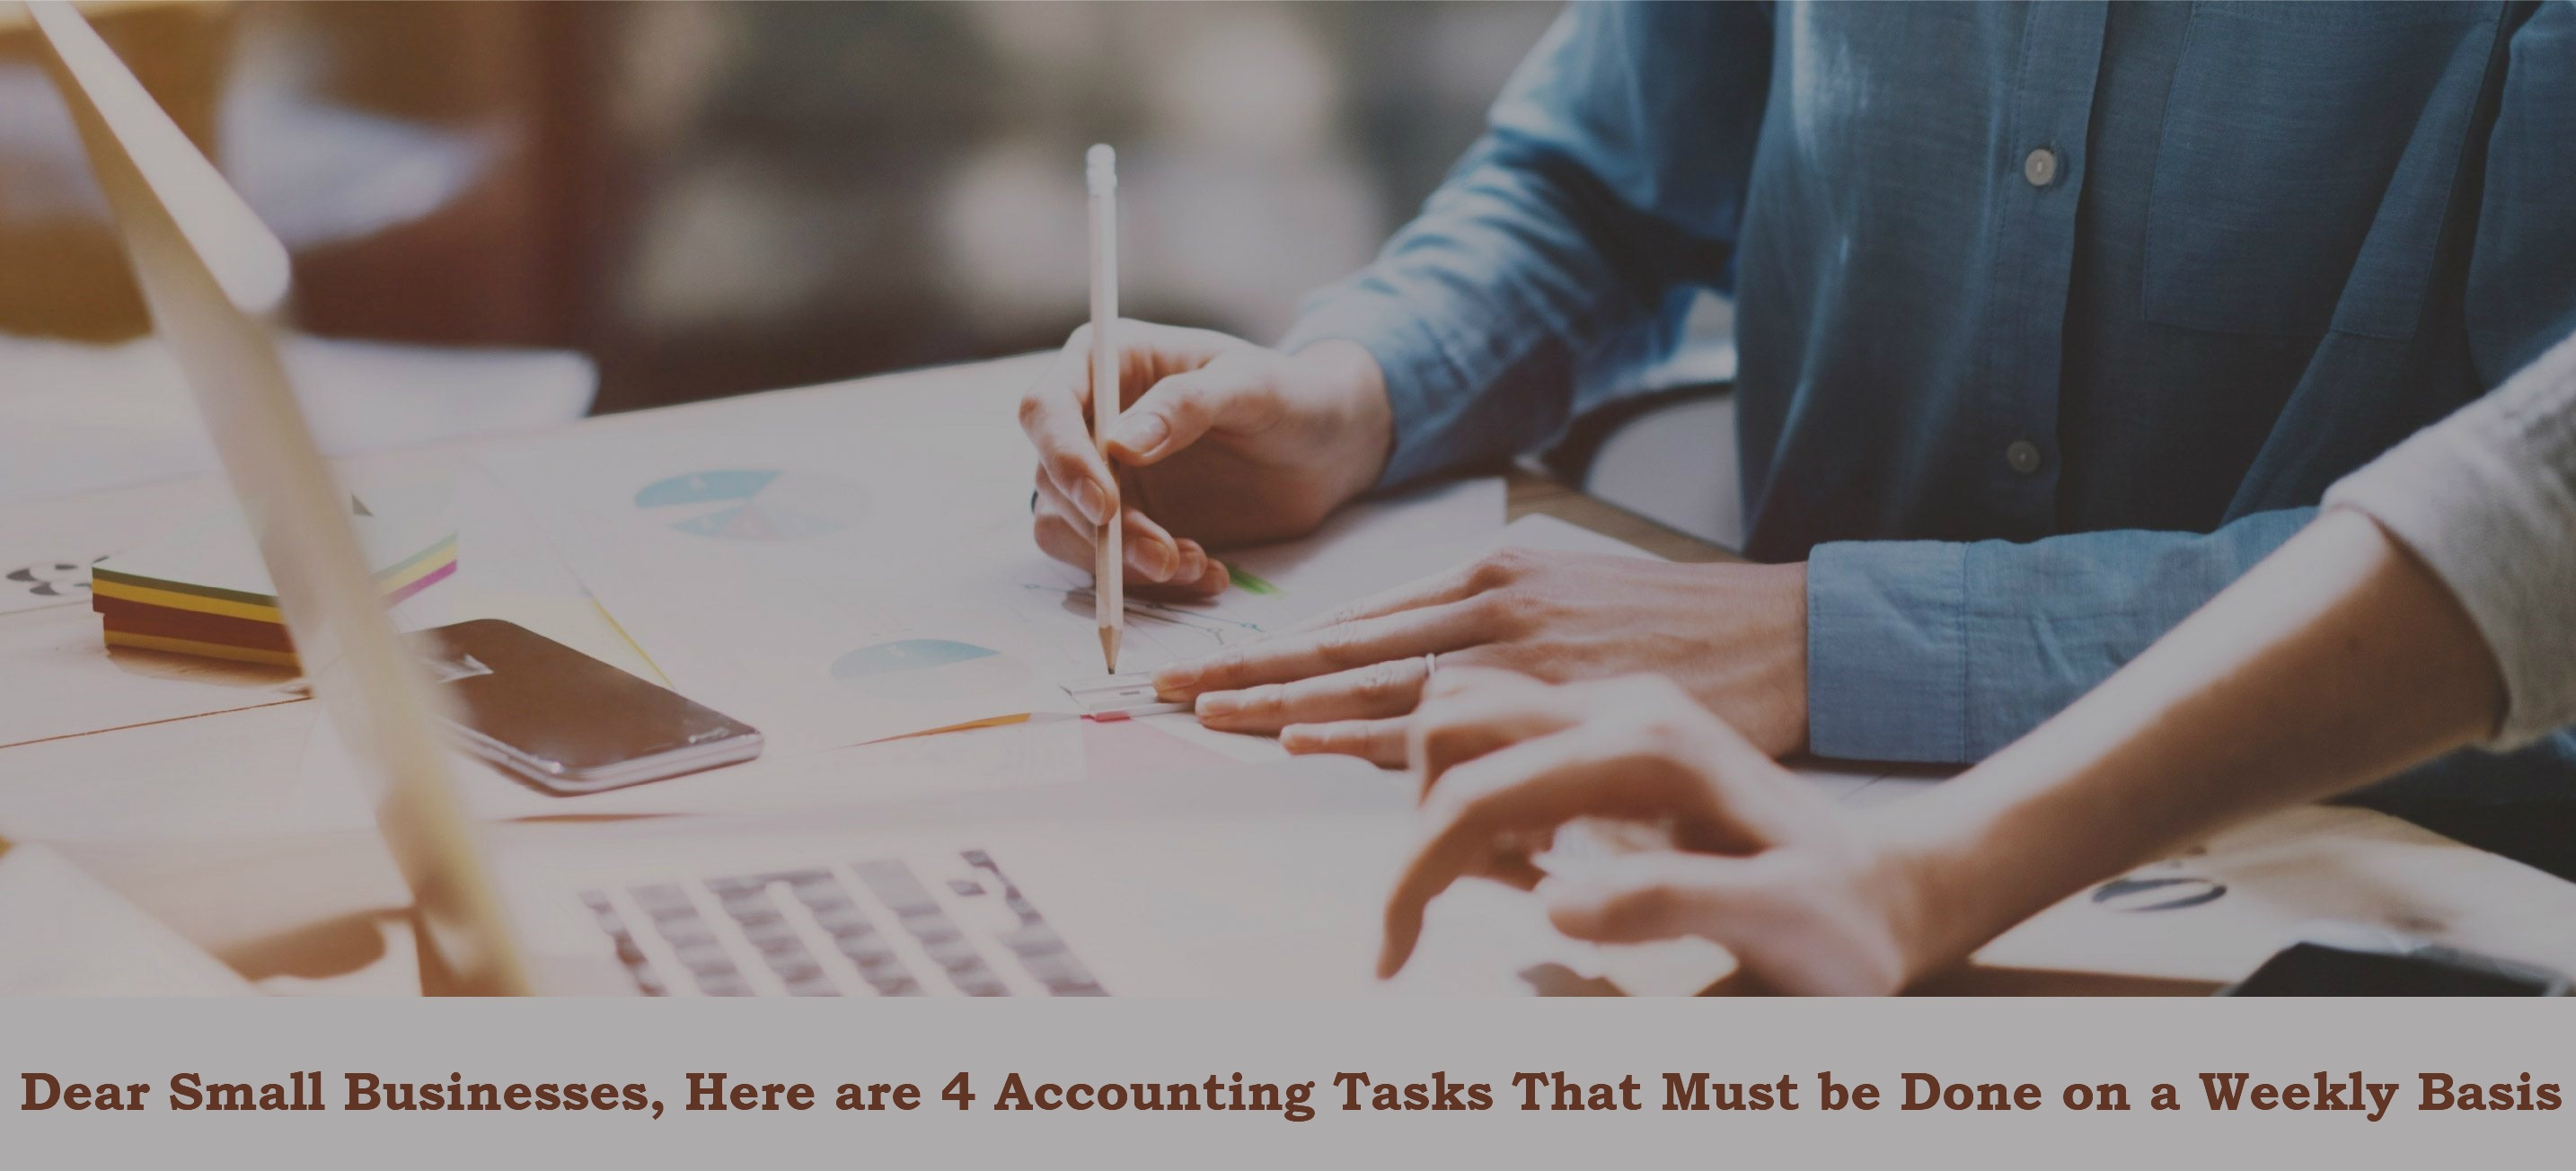 Dear Small Businesses, Here are 4 Accounting Tasks That Must be Done on a Weekly Basis